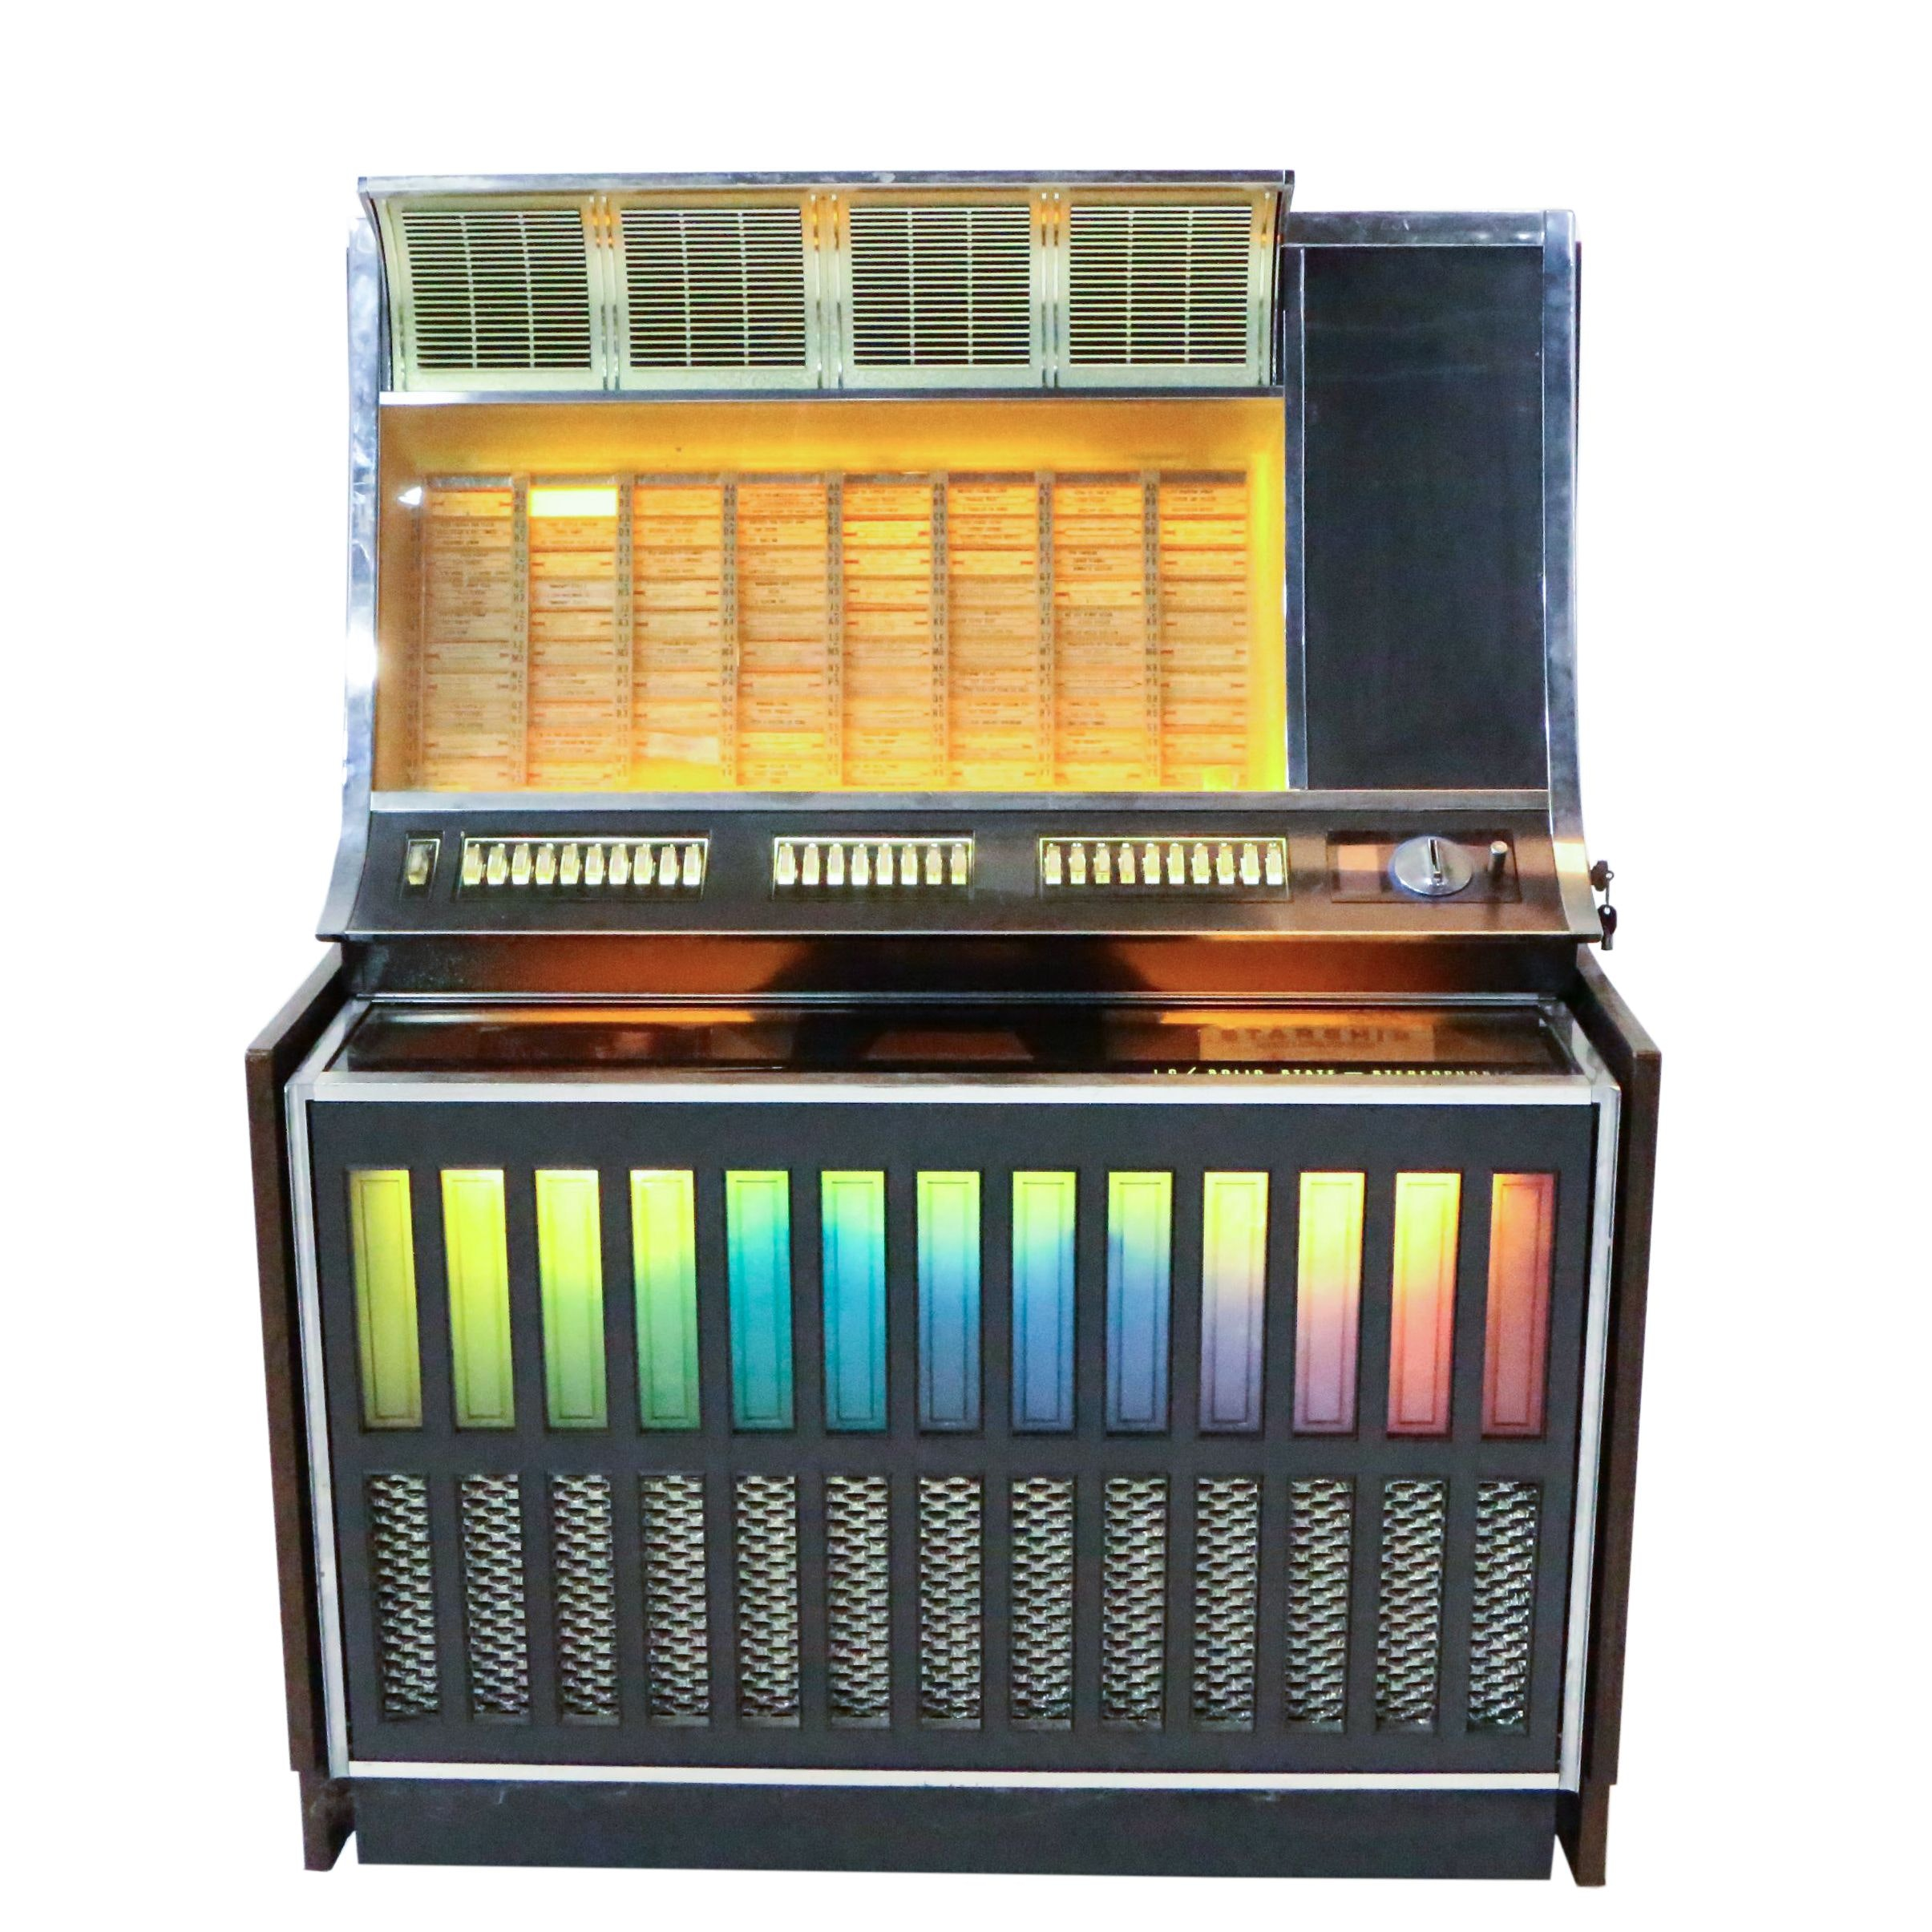 1969 Rock-ola Solid State Stereophonic Jukebox